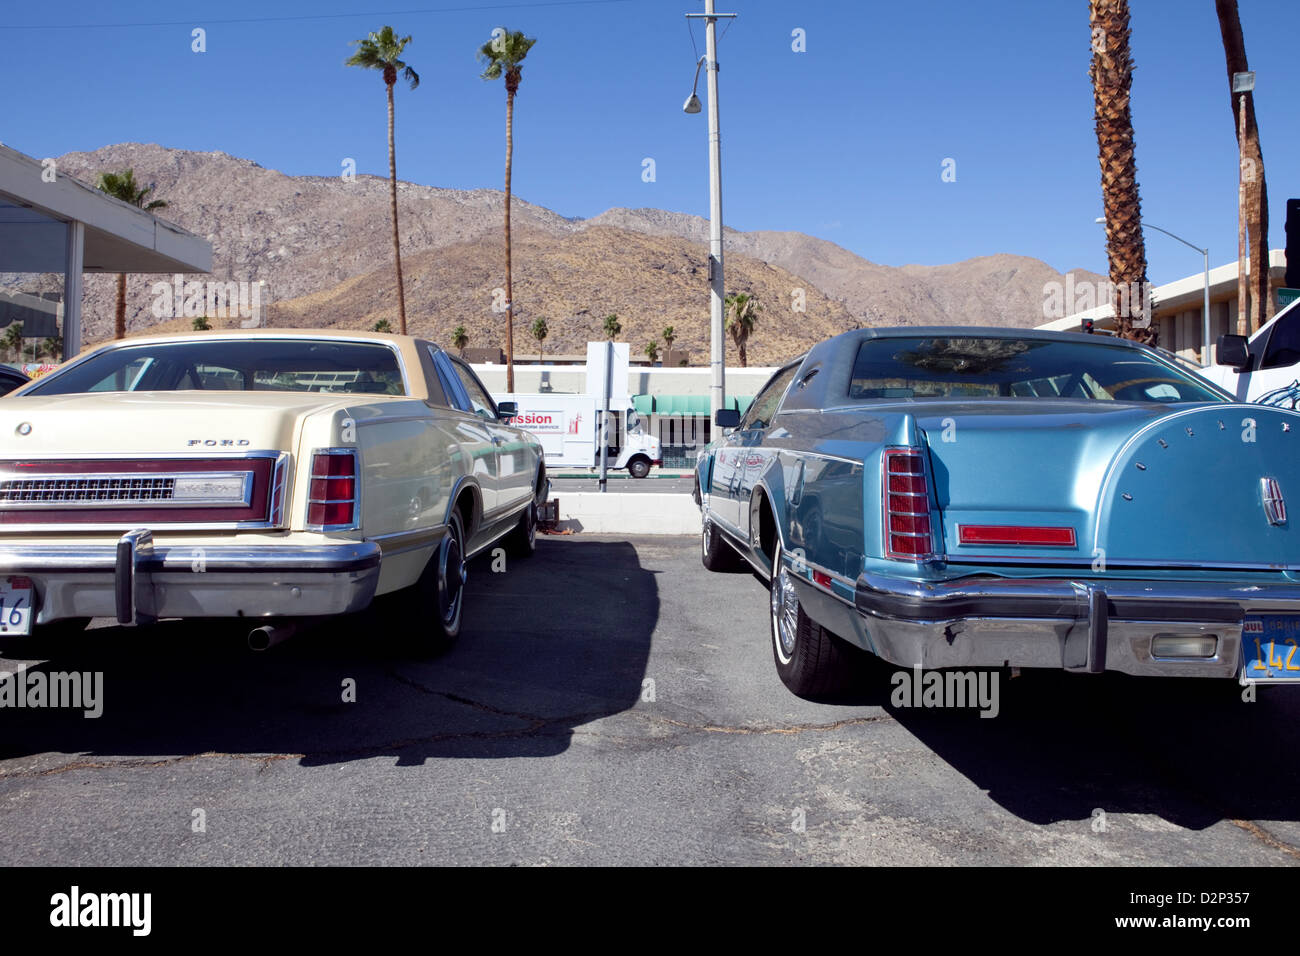 CLASSIC VINTAGE AMERICAN CARS IN A PARKING LOT IN PALM SPRINGS, CA, USA - Stock Image